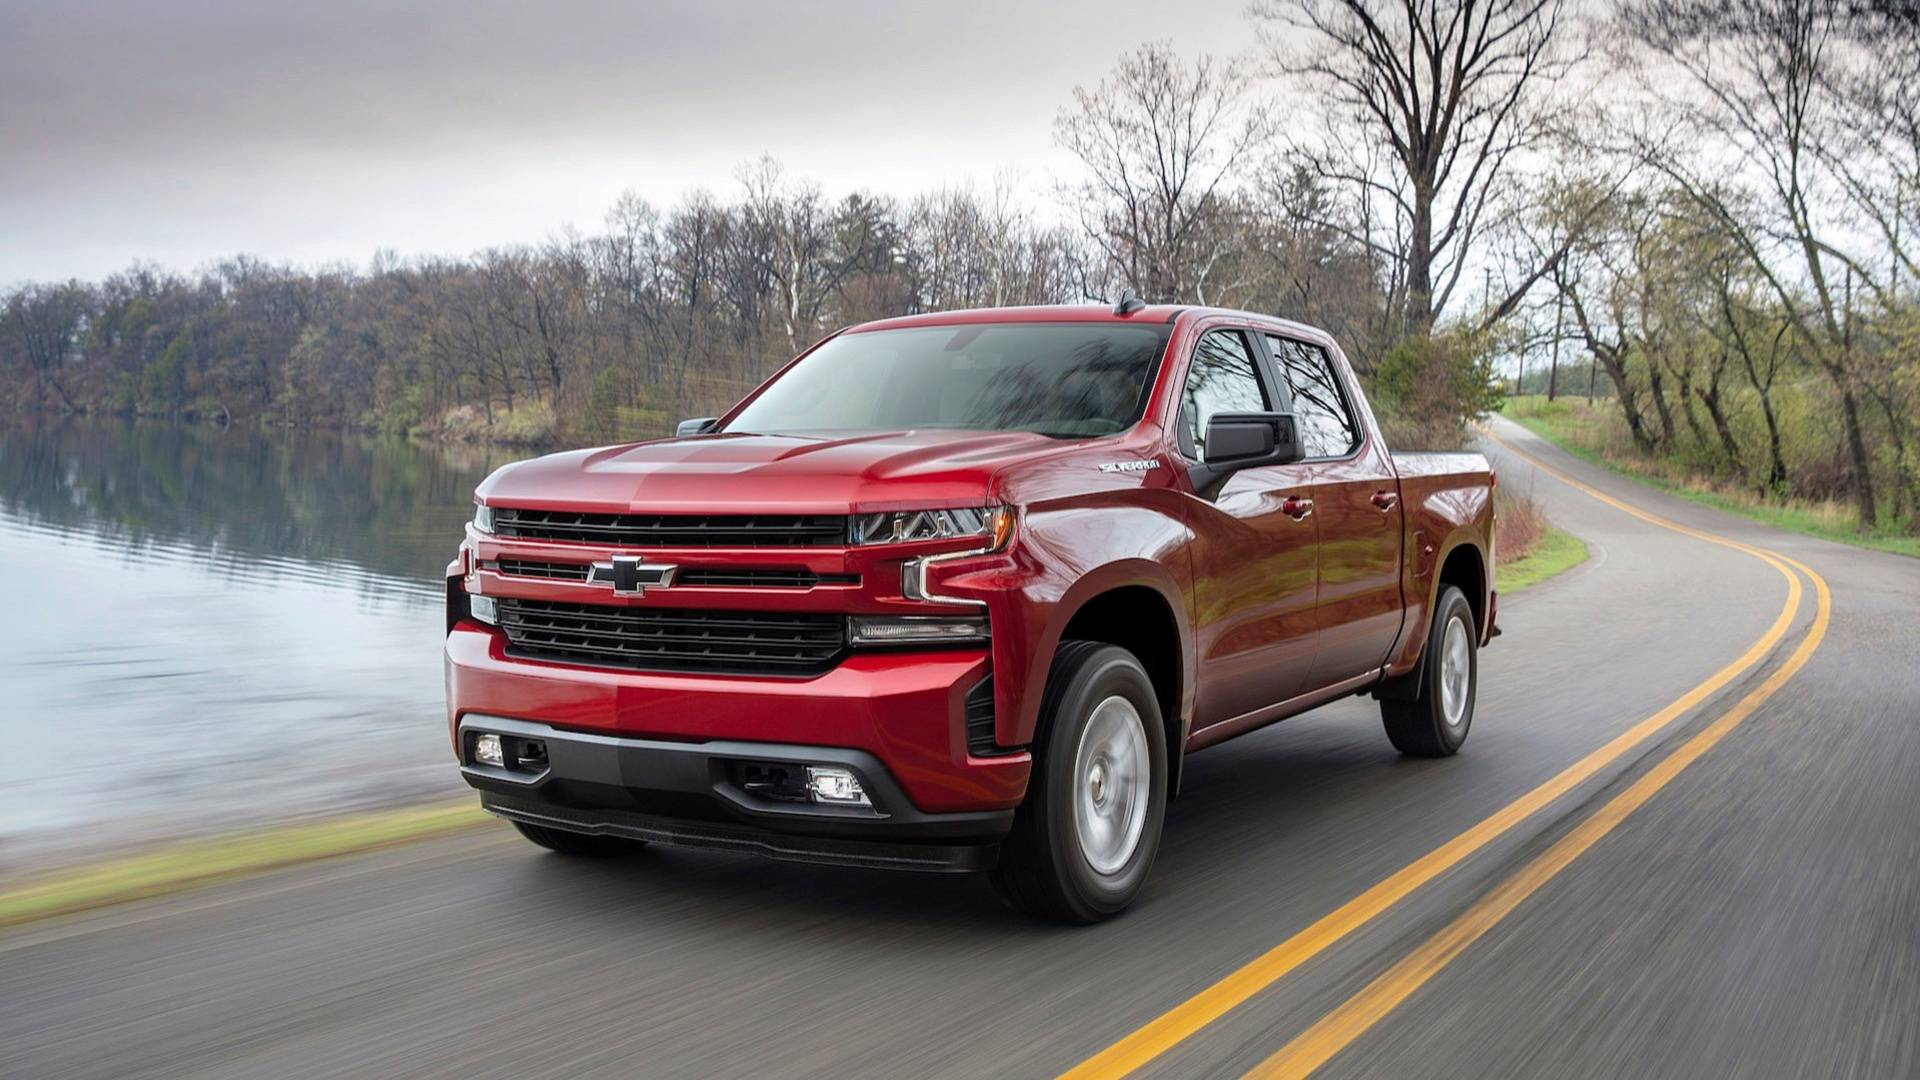 Chevy Reaper For Sale >> Chevy Says Silverado Trailboss Is No Raptor But Should Sell Well